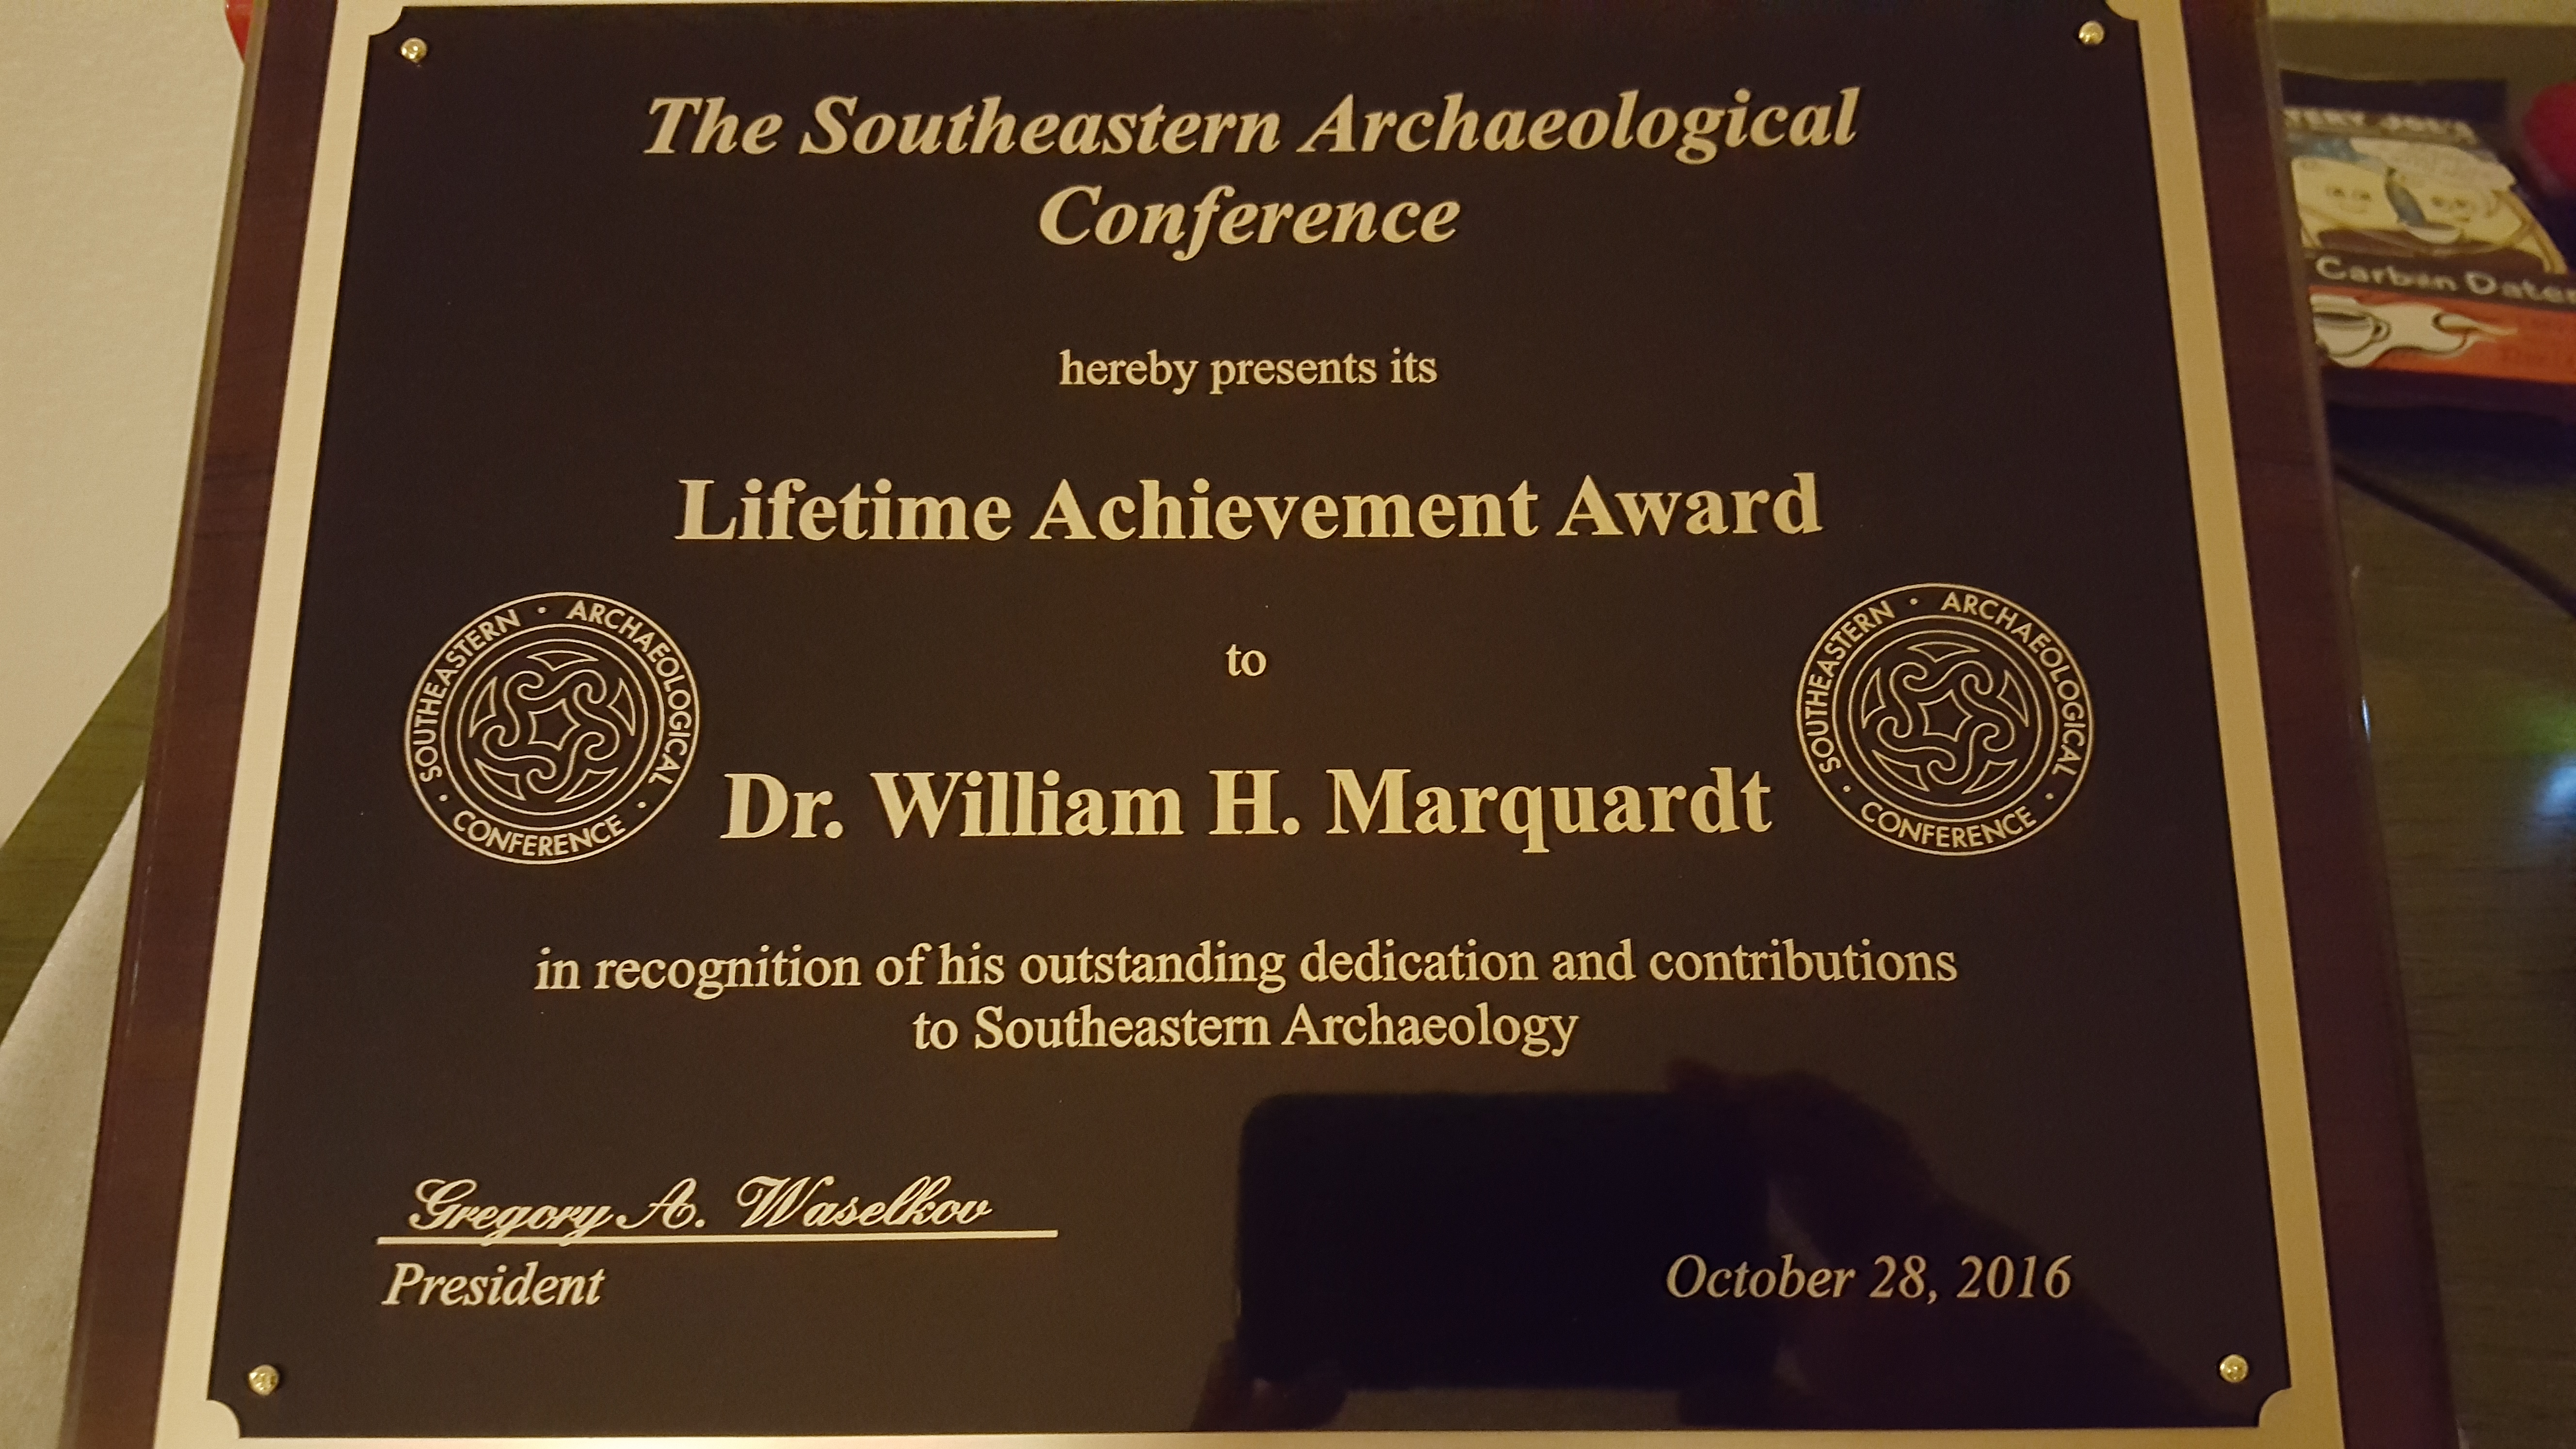 Photo of diploma plaque given to Dr. William H. Marquardt.